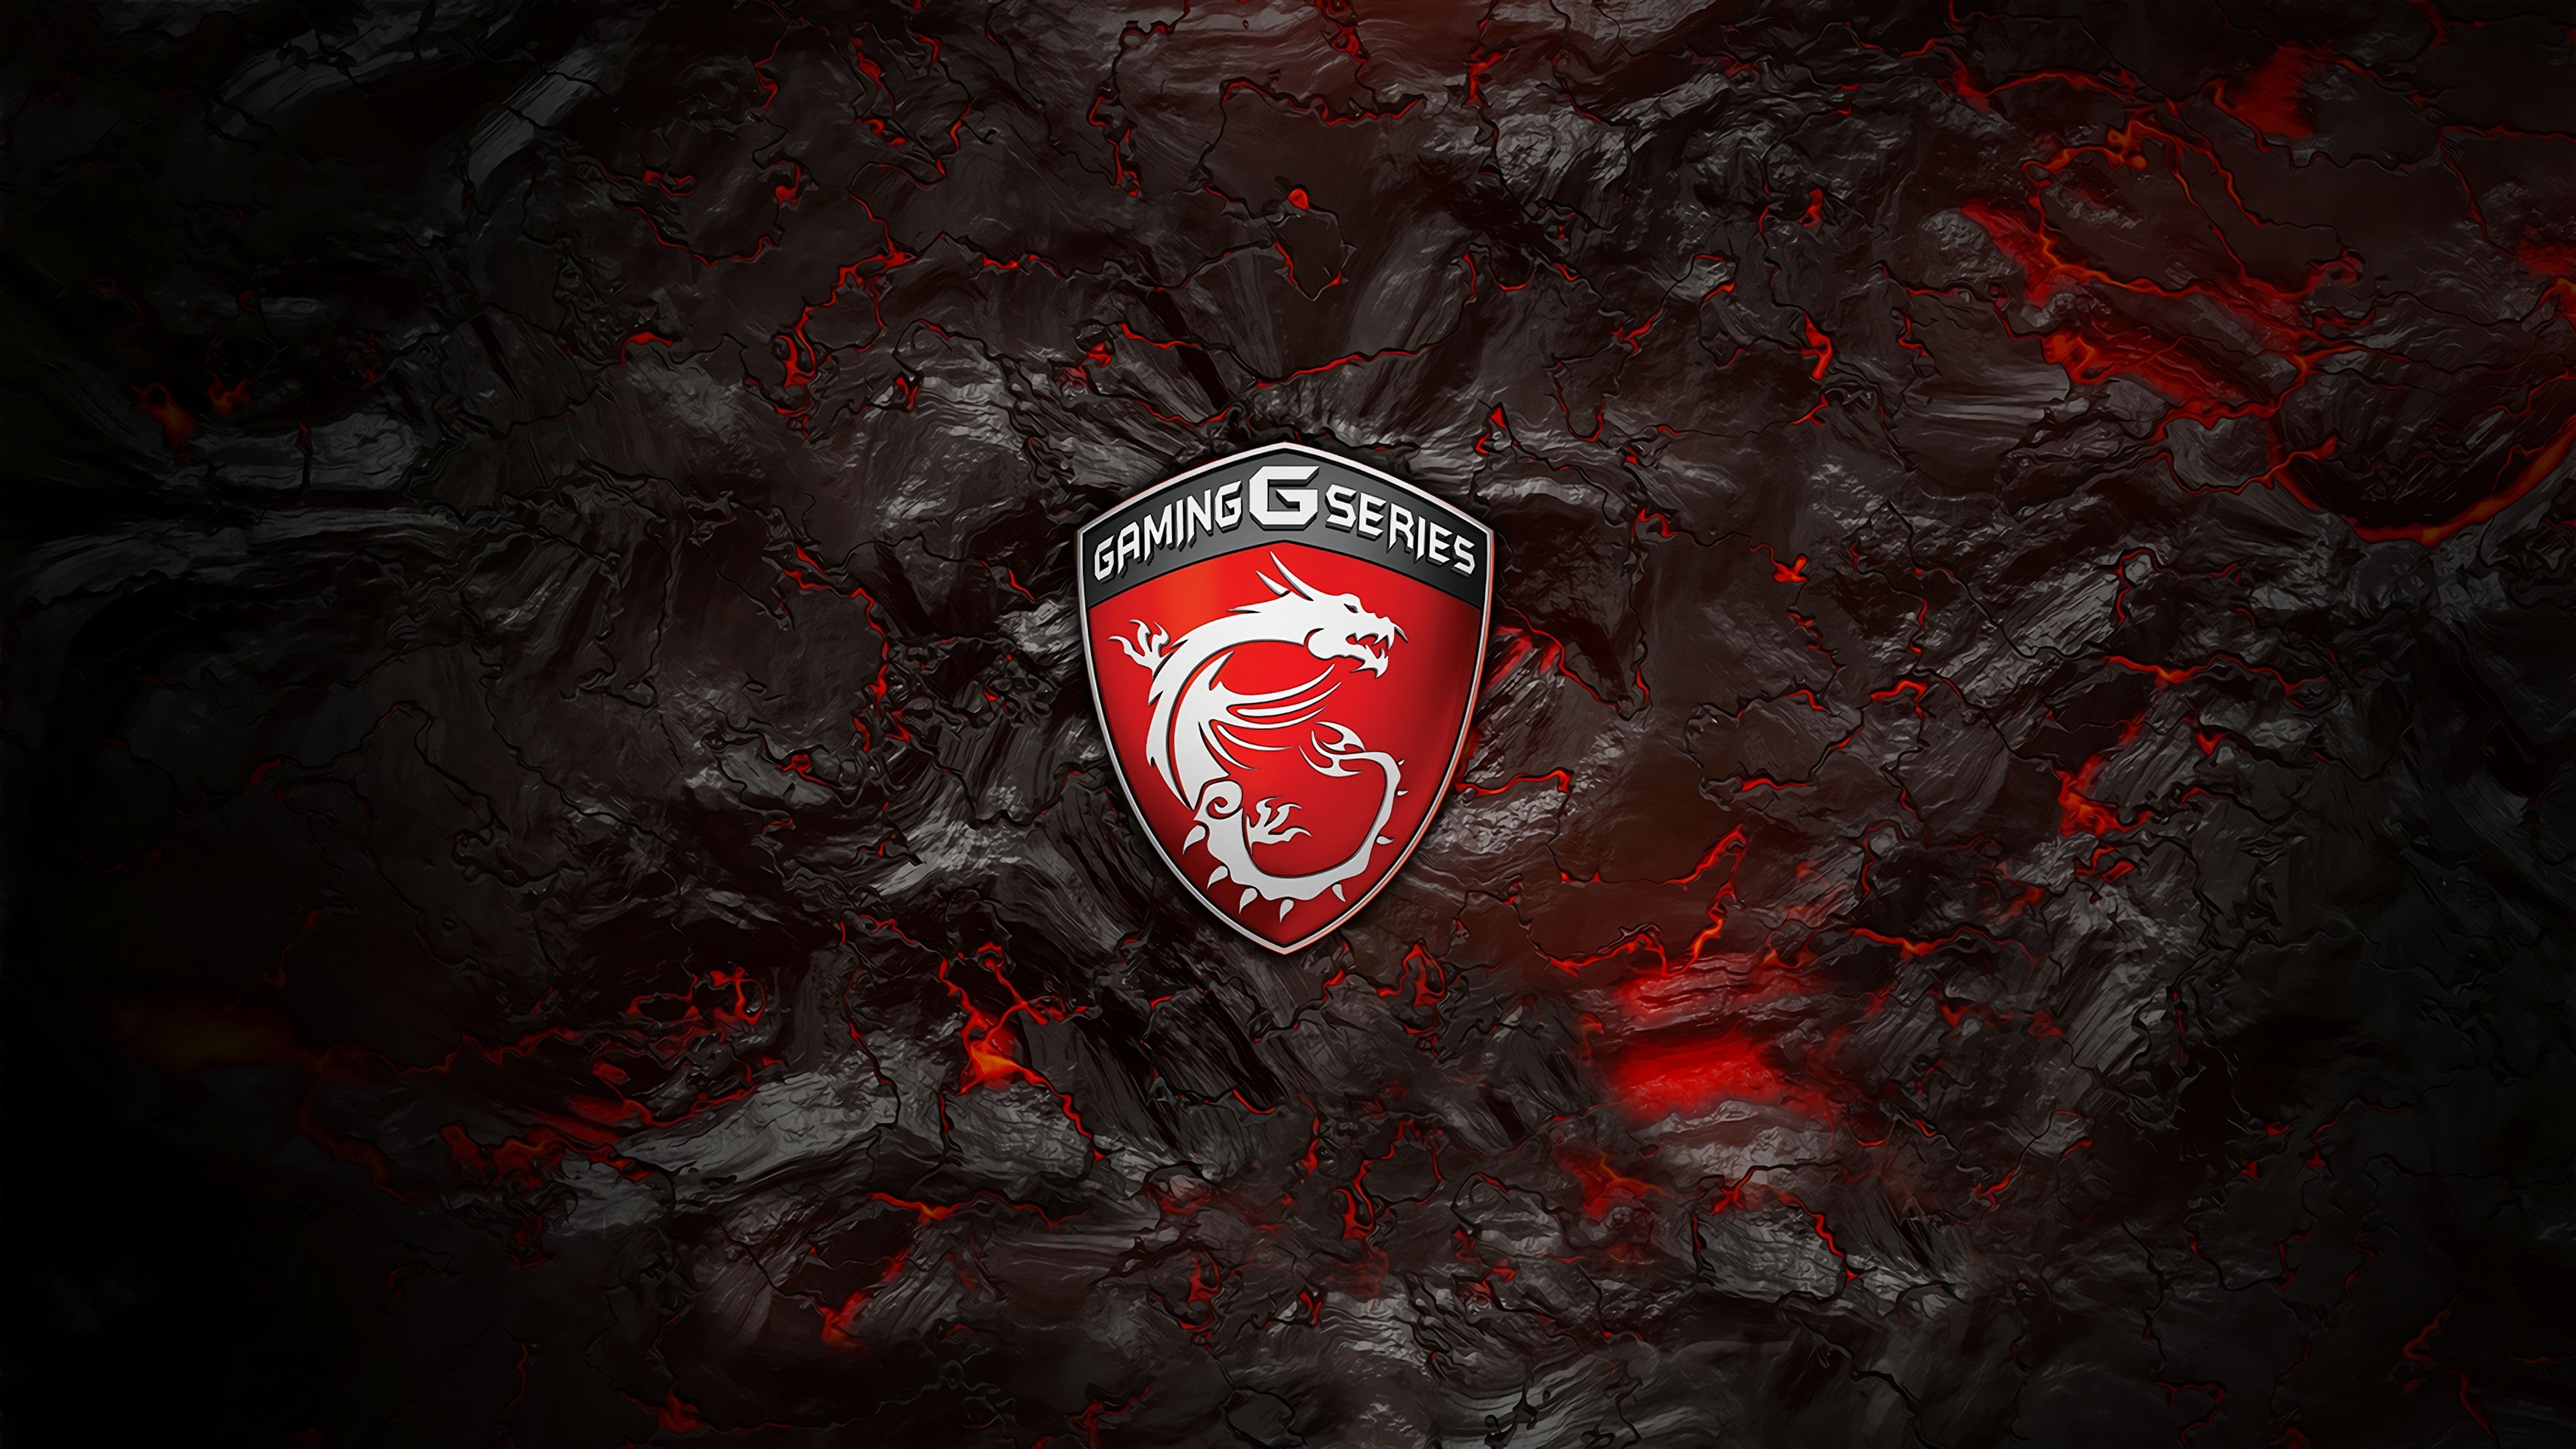 Msi gaming g series logo lava background 4k wallpaper - Red gaming wallpaper ...